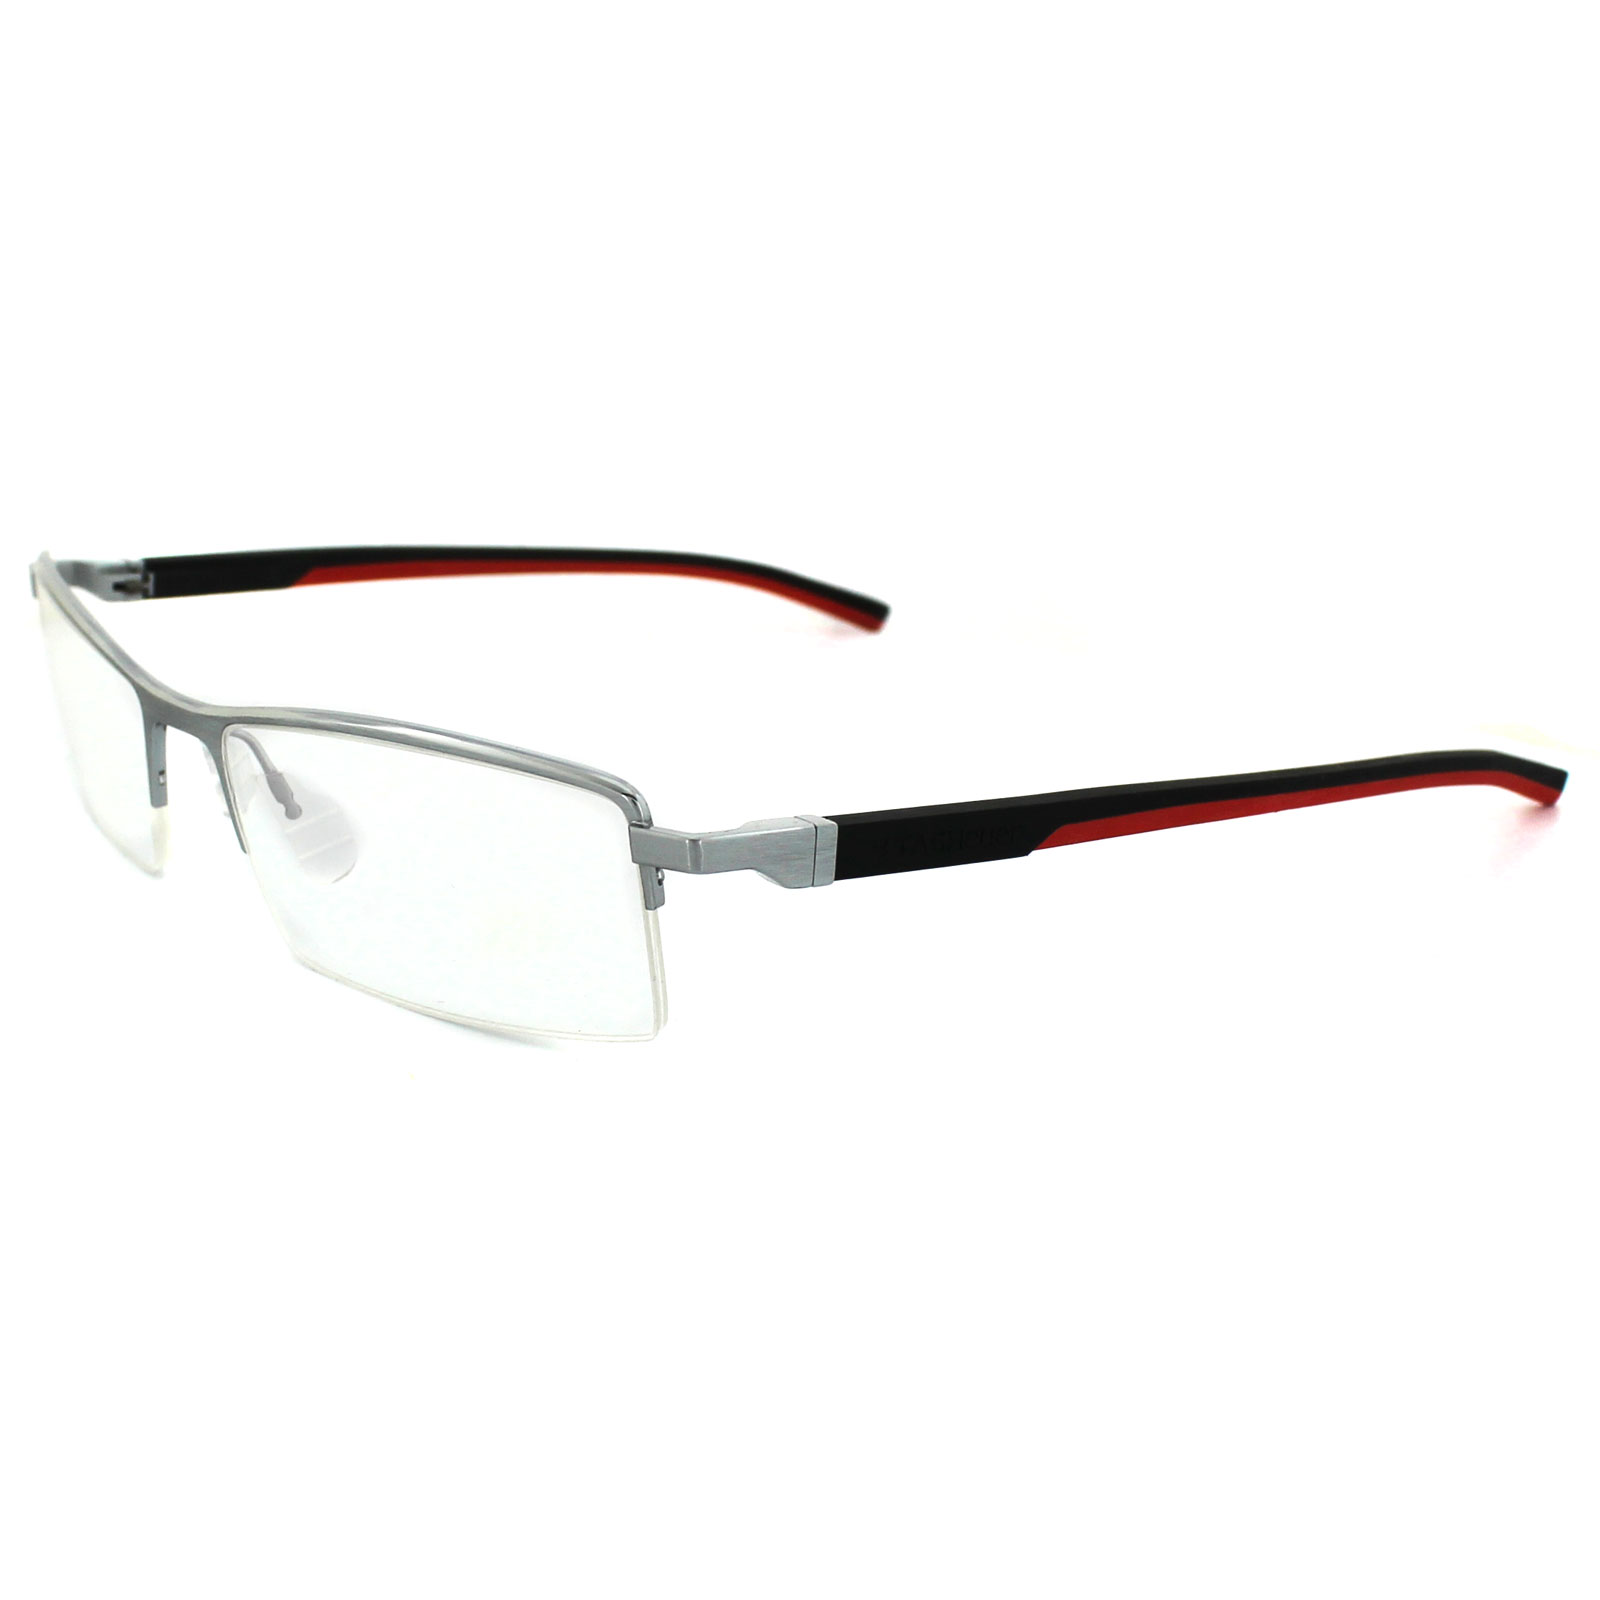 Cheap Tag Heuer Automatic 0821 Frames - Discounted Sunglasses